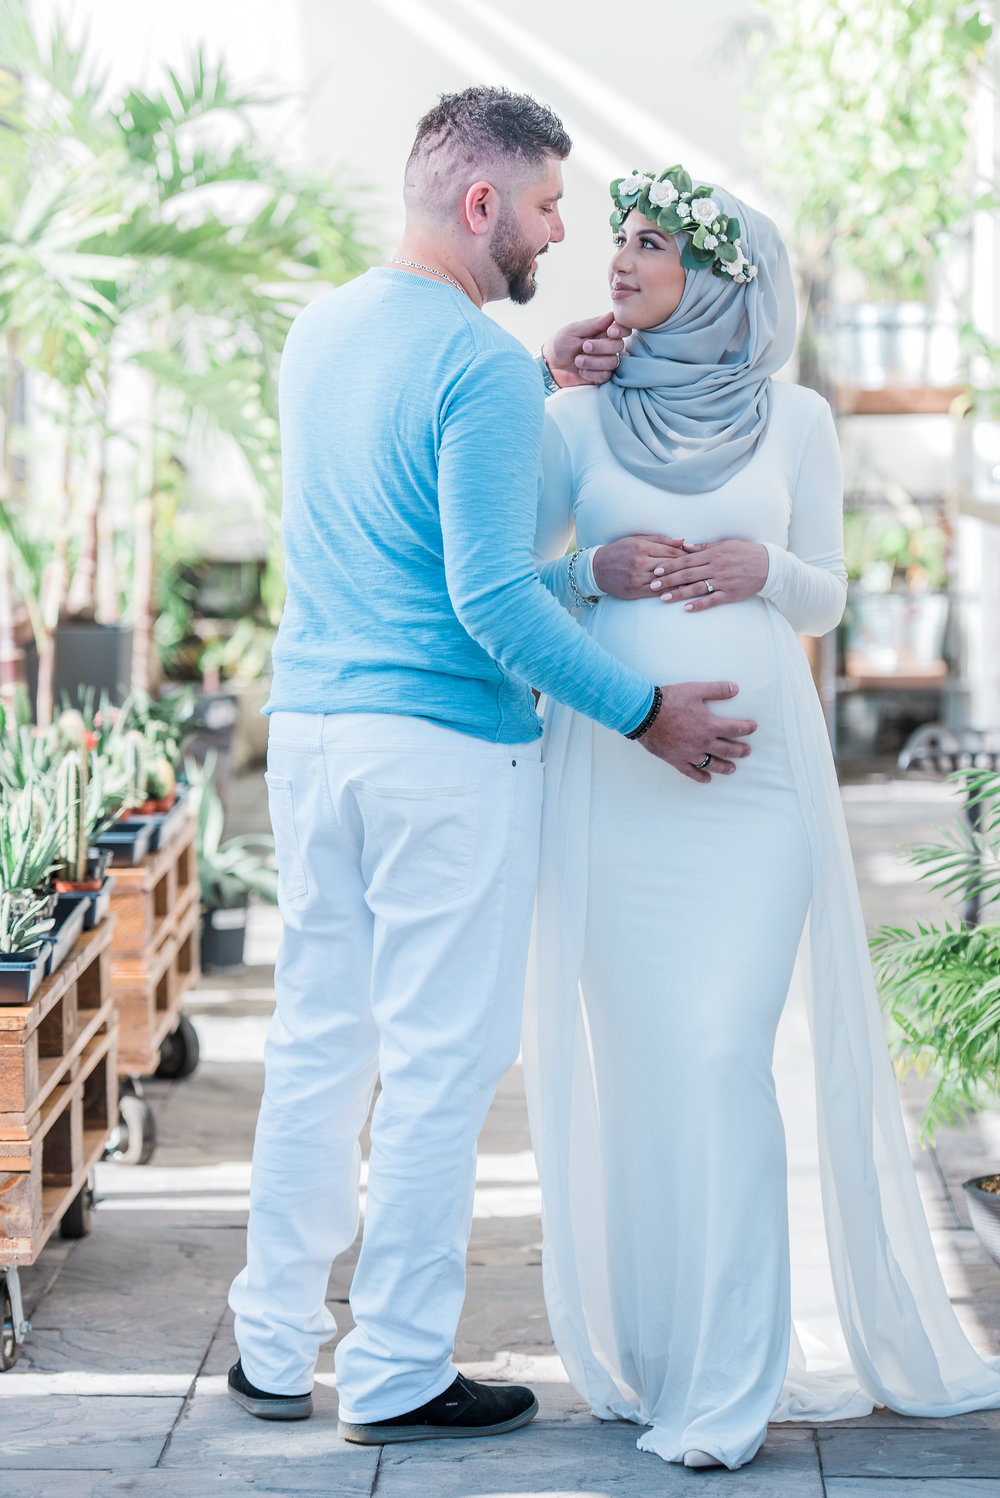 Tehaili_Hanan_Maternity_Photoshoot_WhiteDress.jpg